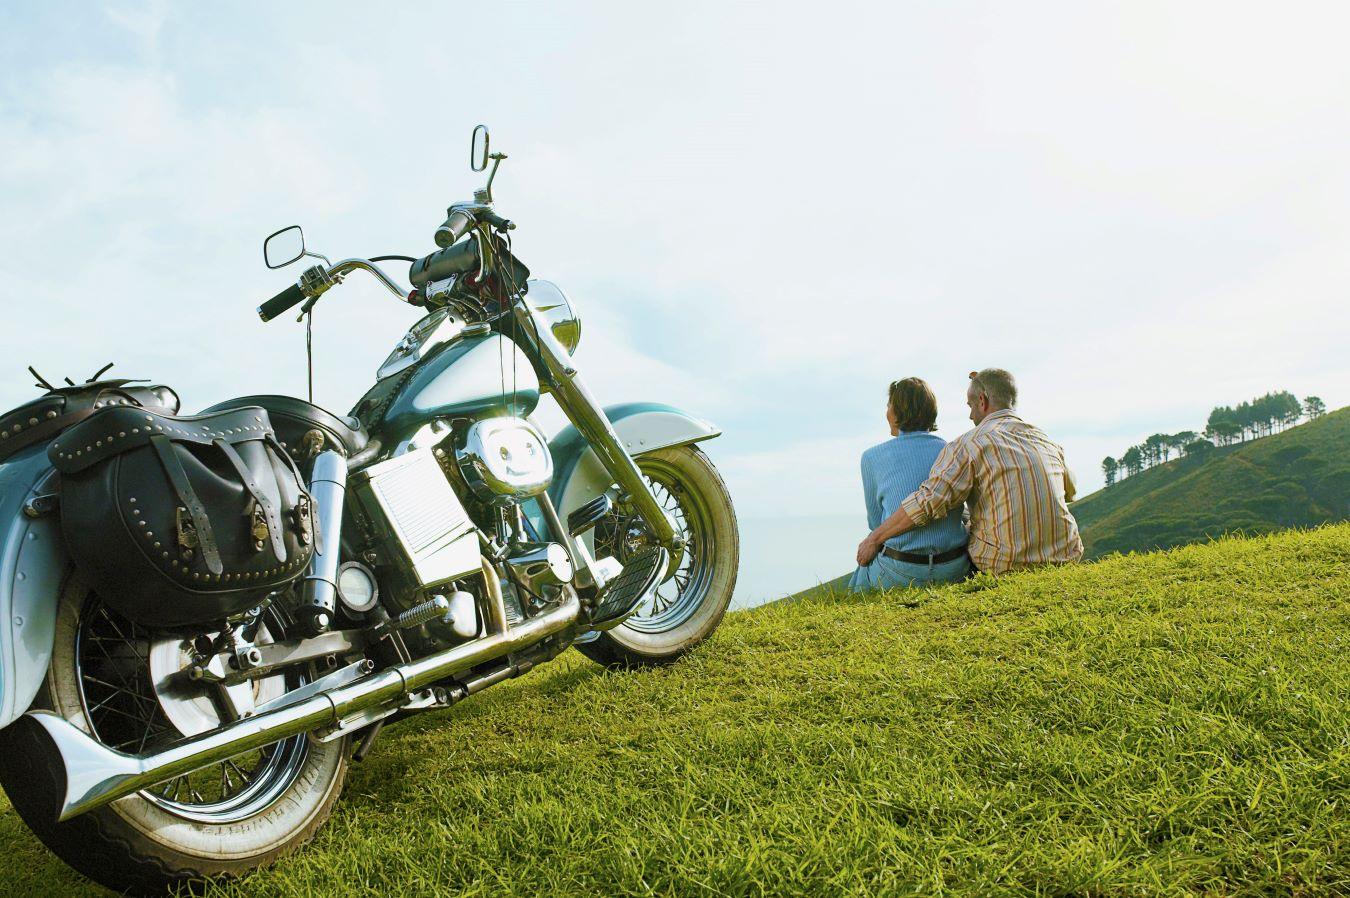 10 Steps for Securing Your Motorcycle